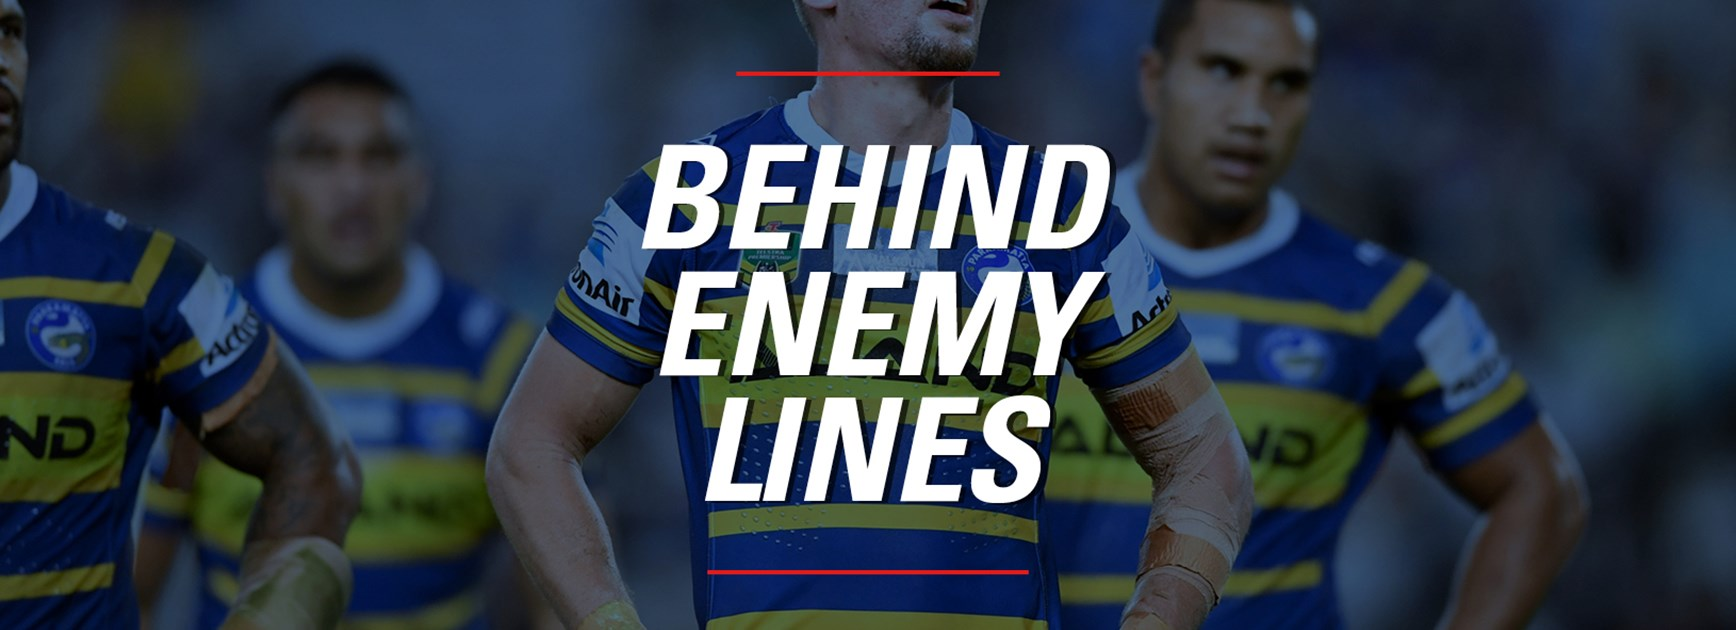 Behind Enemy Lines: Corey Norman's injury and Eel's disciplinary problems